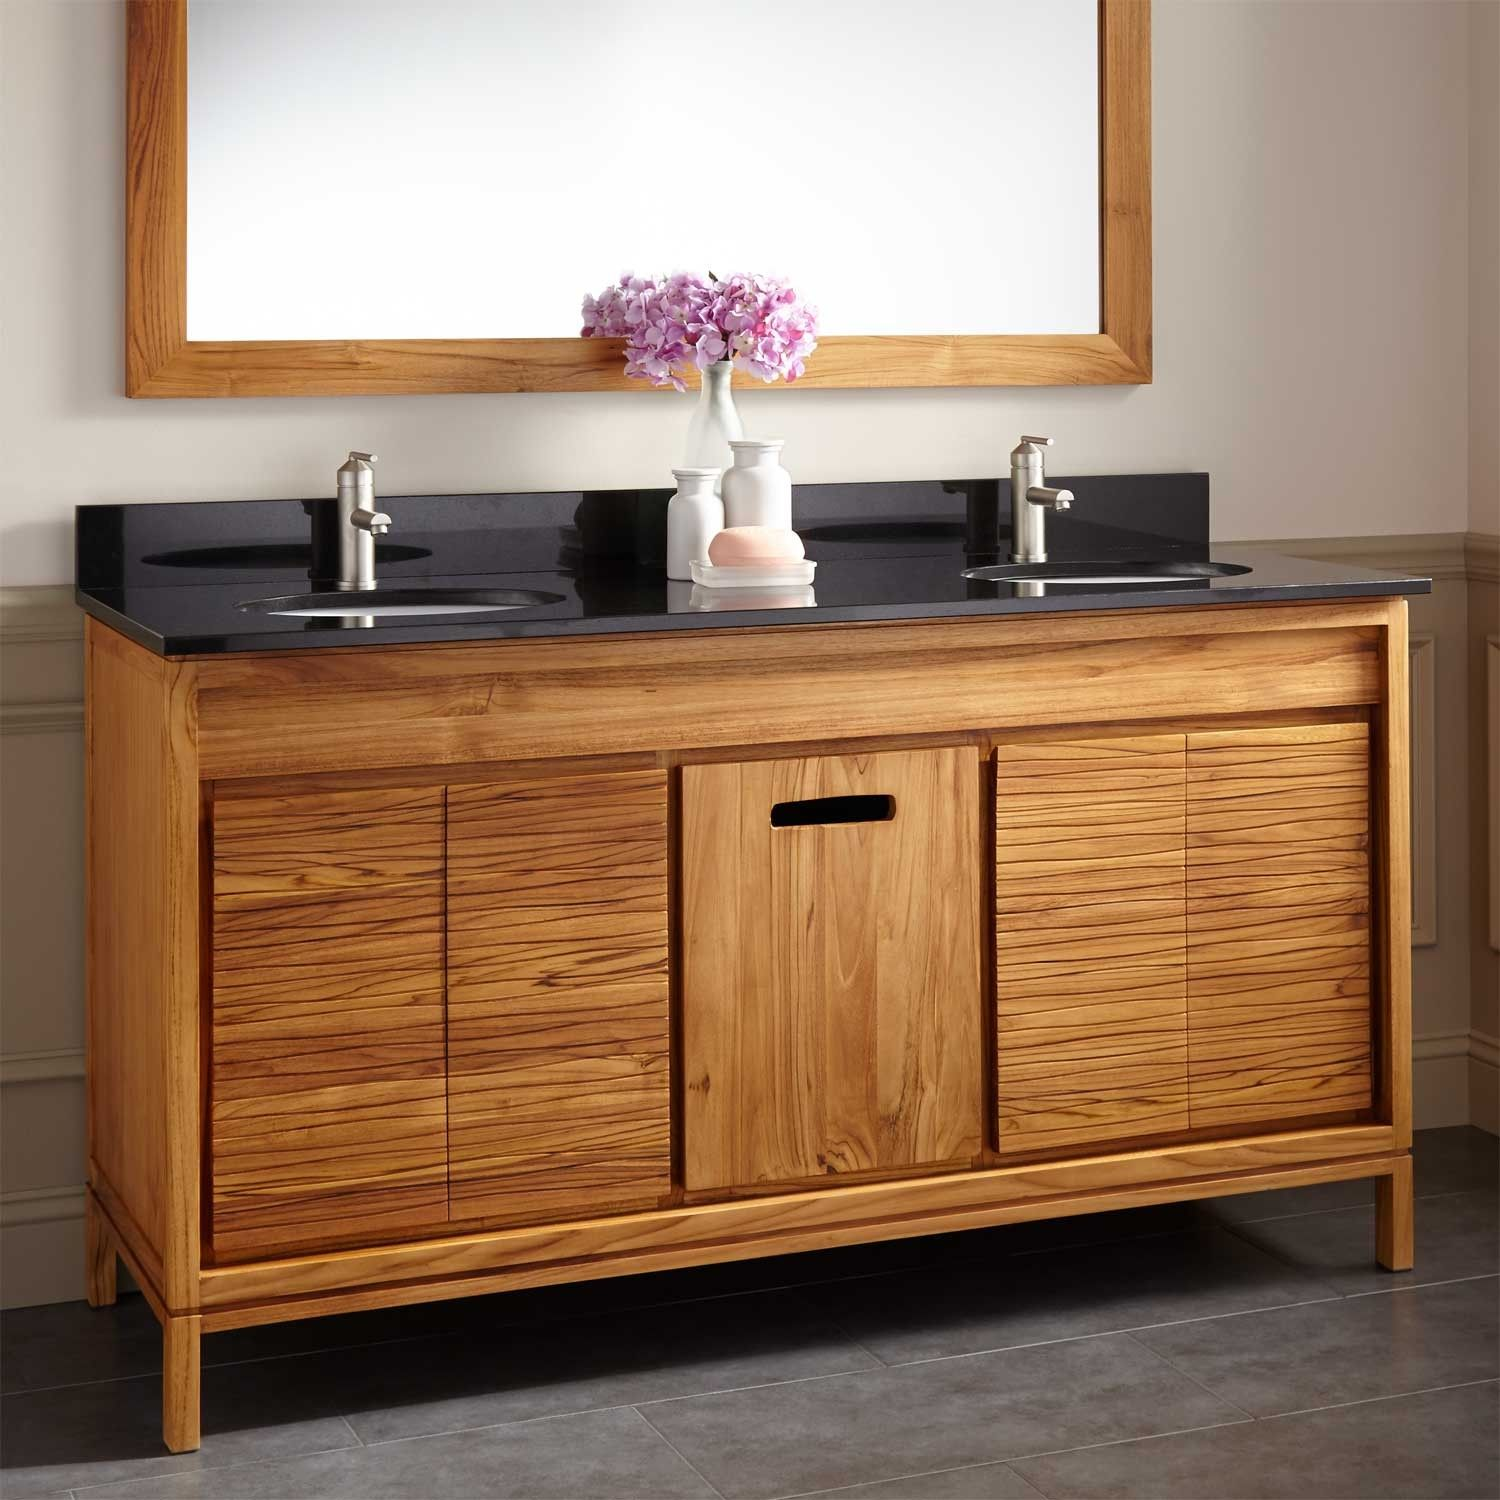 60 Becker Teak Vanity For Undermount Sink Double Sink Vanities Bathroom Vanities Bathroom Teak Vanity Teak Bathroom Vanity Teak Bathroom